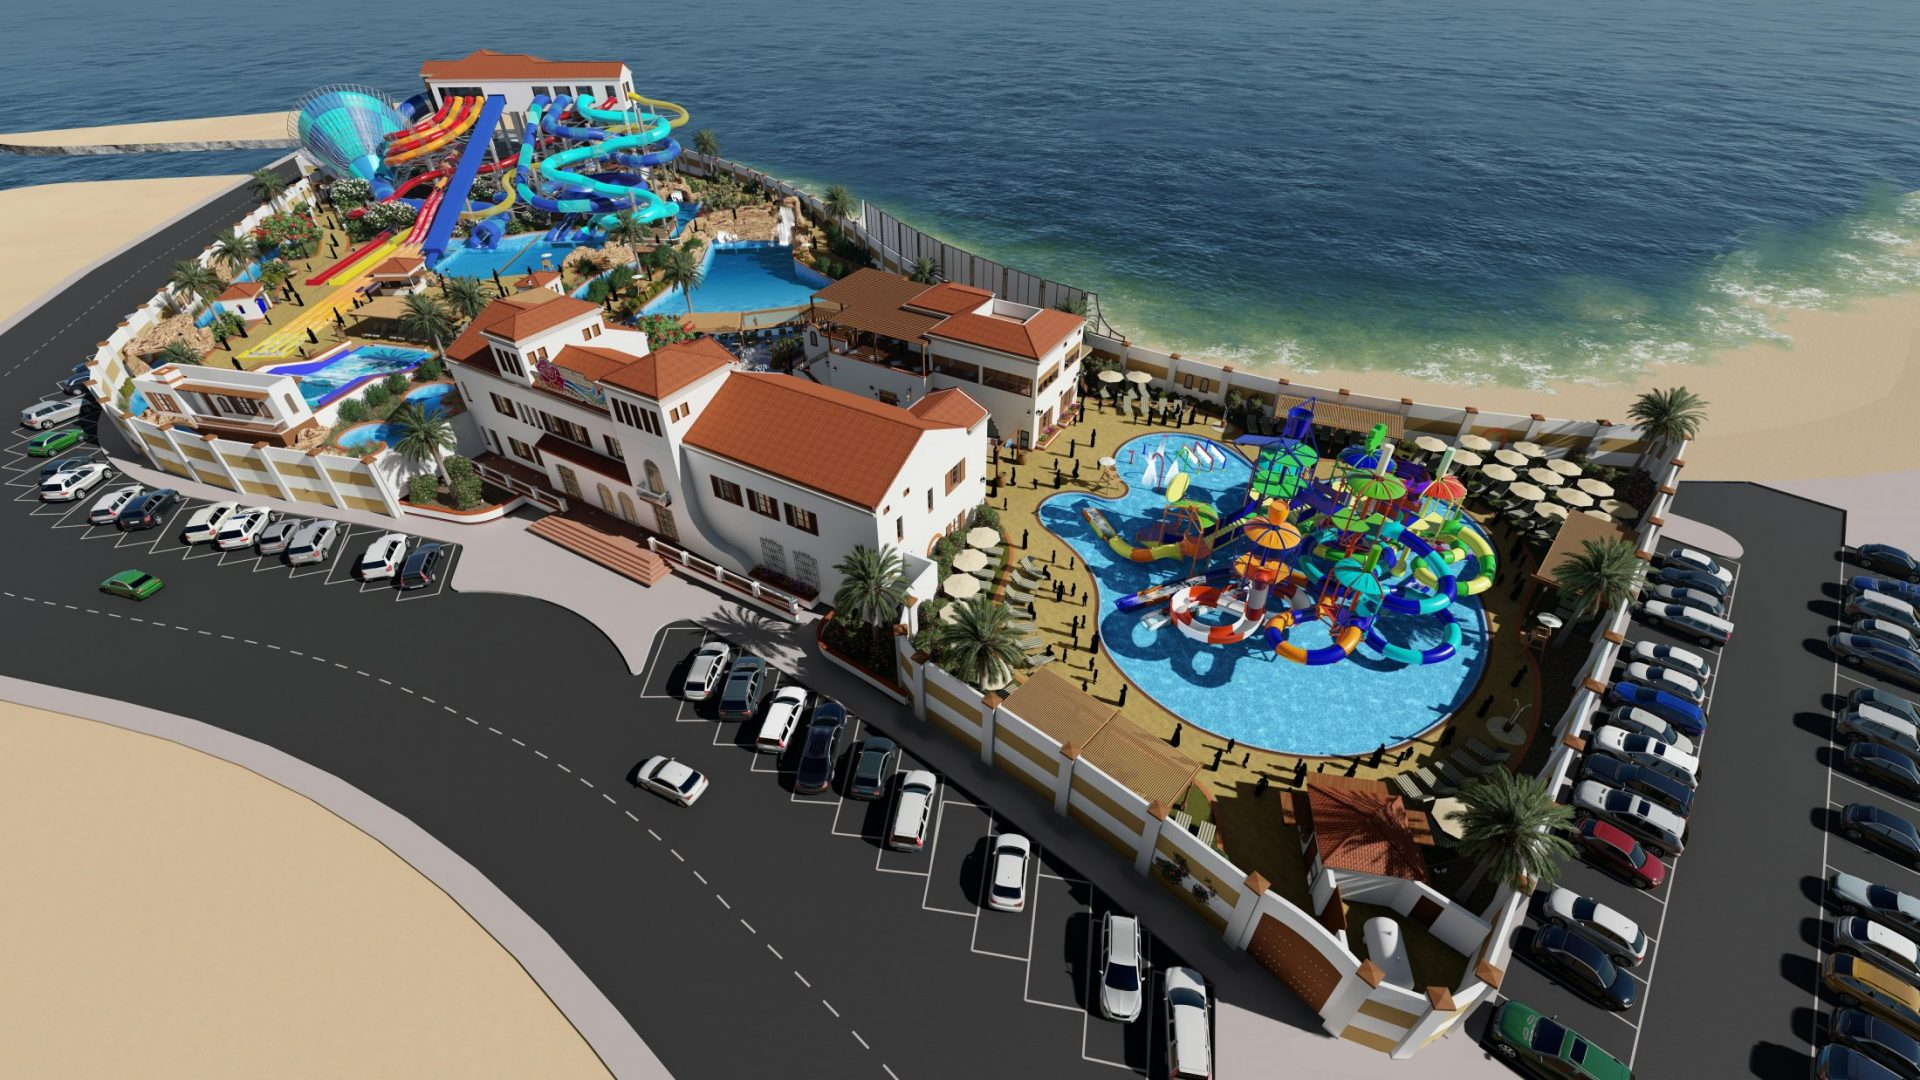 Water Park aerial view